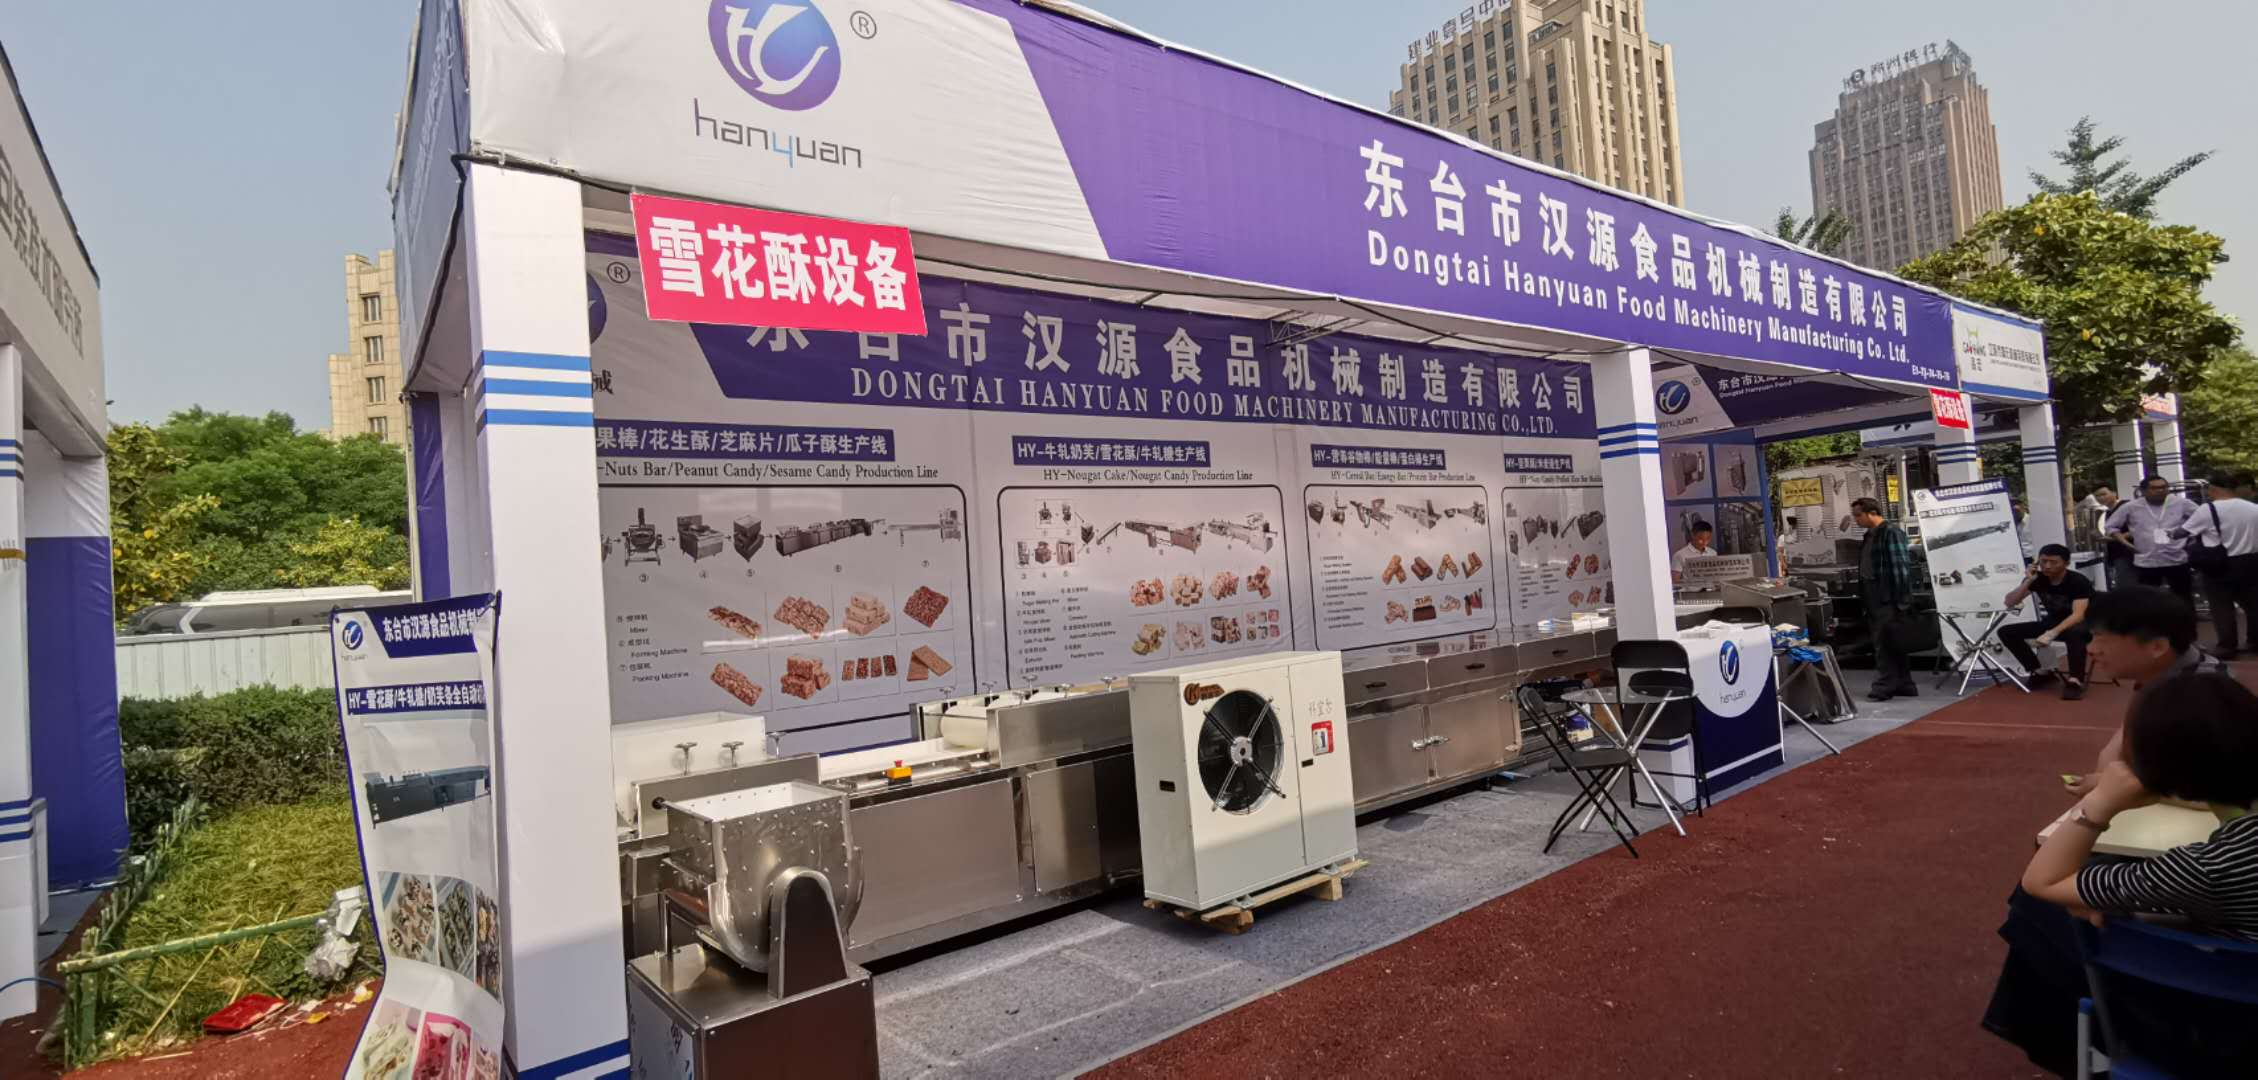 Luohe Food Machinery Exhibition 2